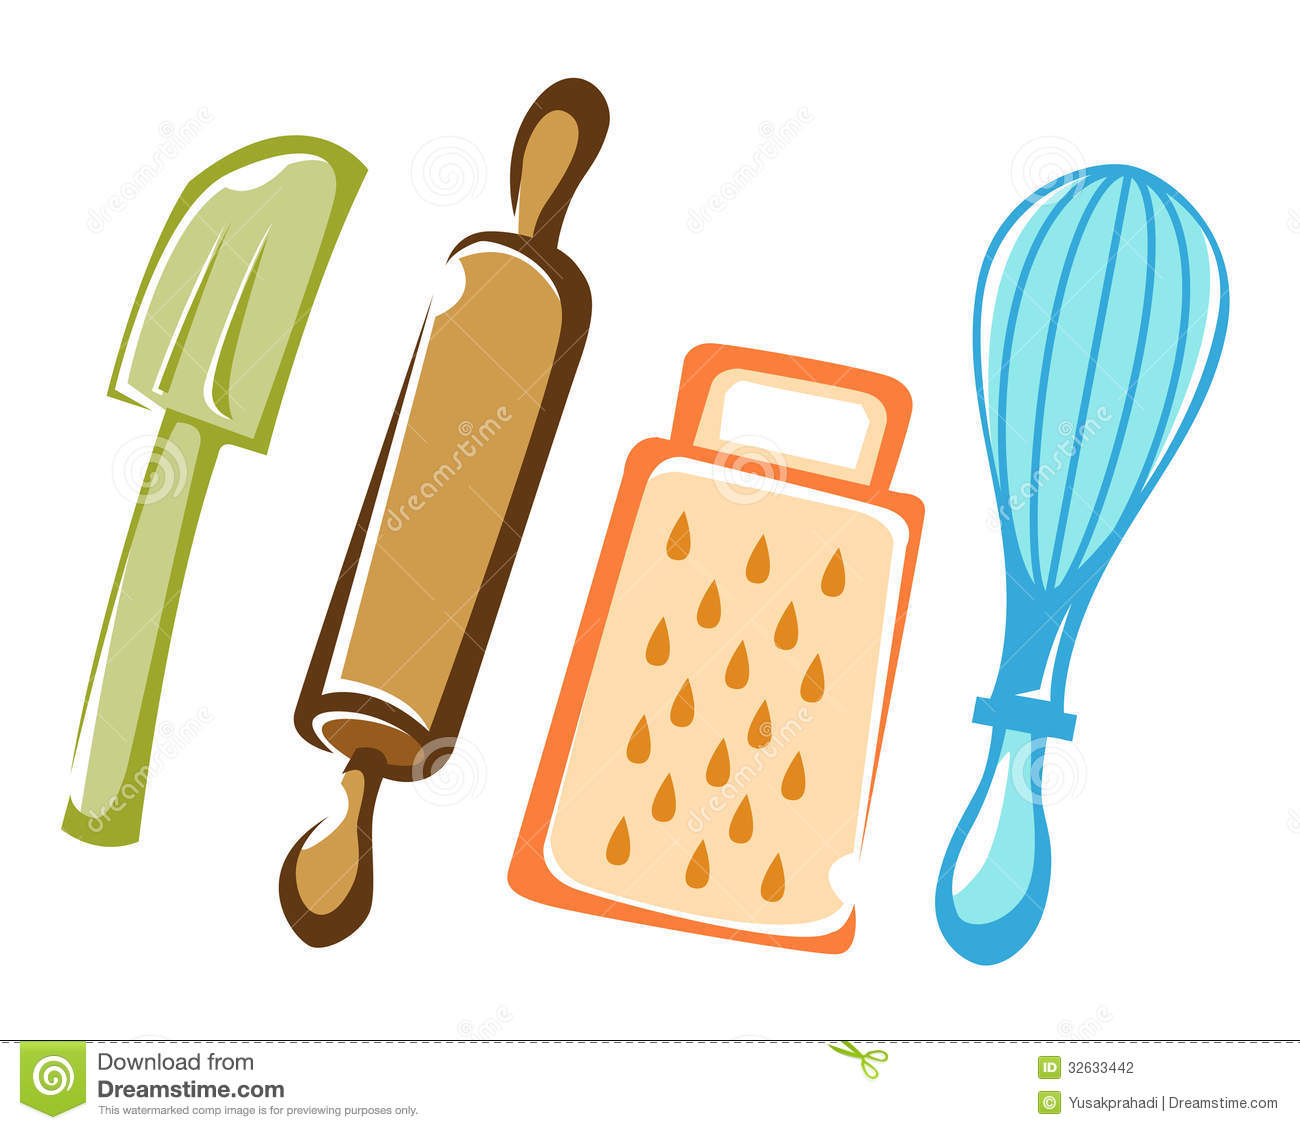 Cooking Tools And Ingredients Clipart - Free Clip Art Images